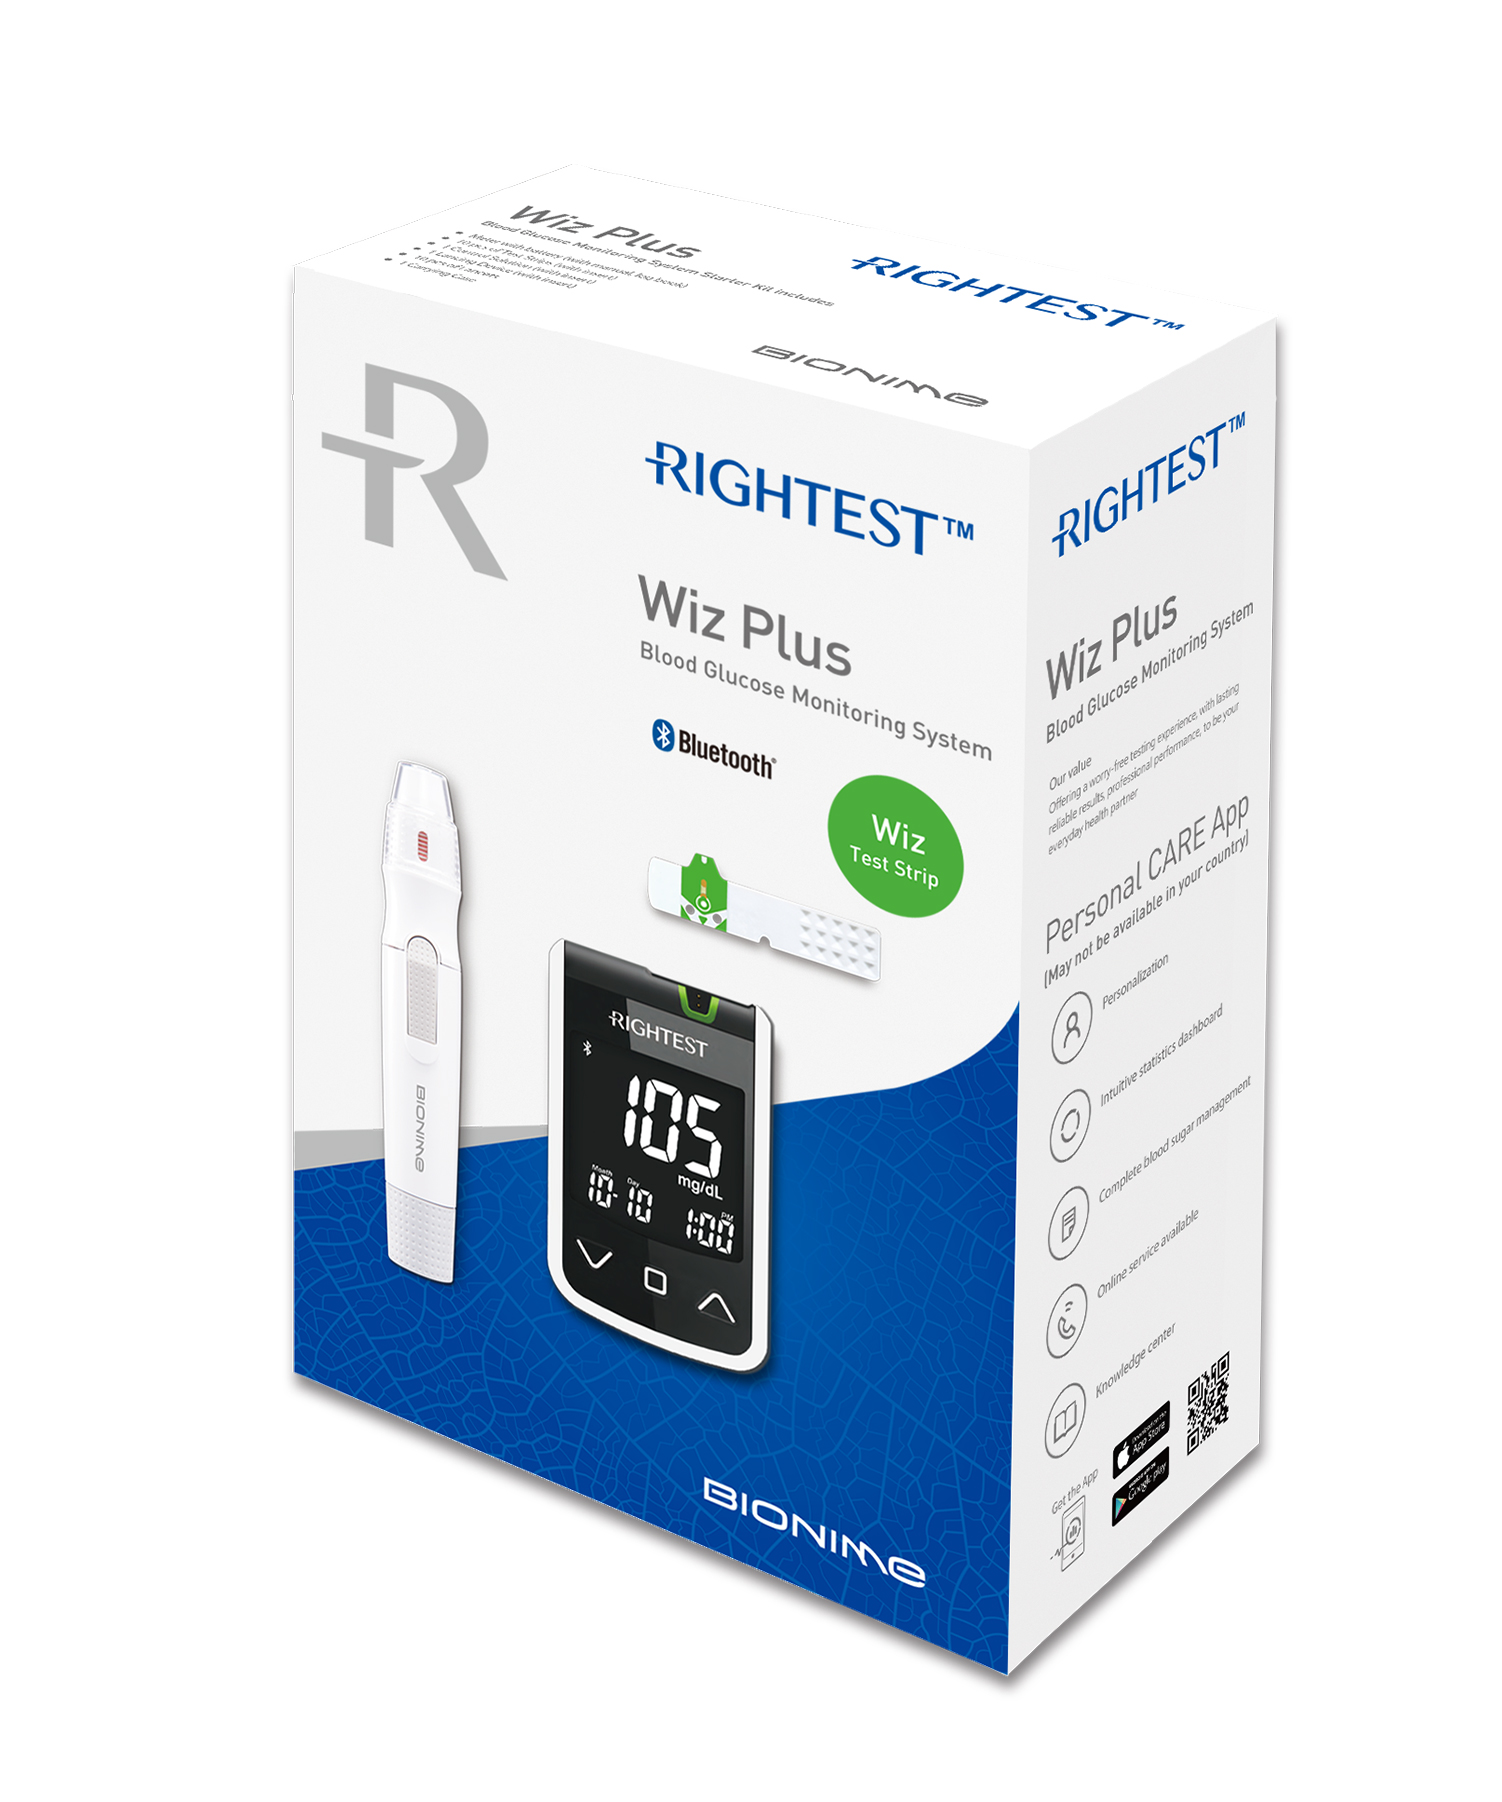 pro-img/05_Wiz/en/Wizplus-box(mmol)-en-Rightest-glucose-meter.jpg